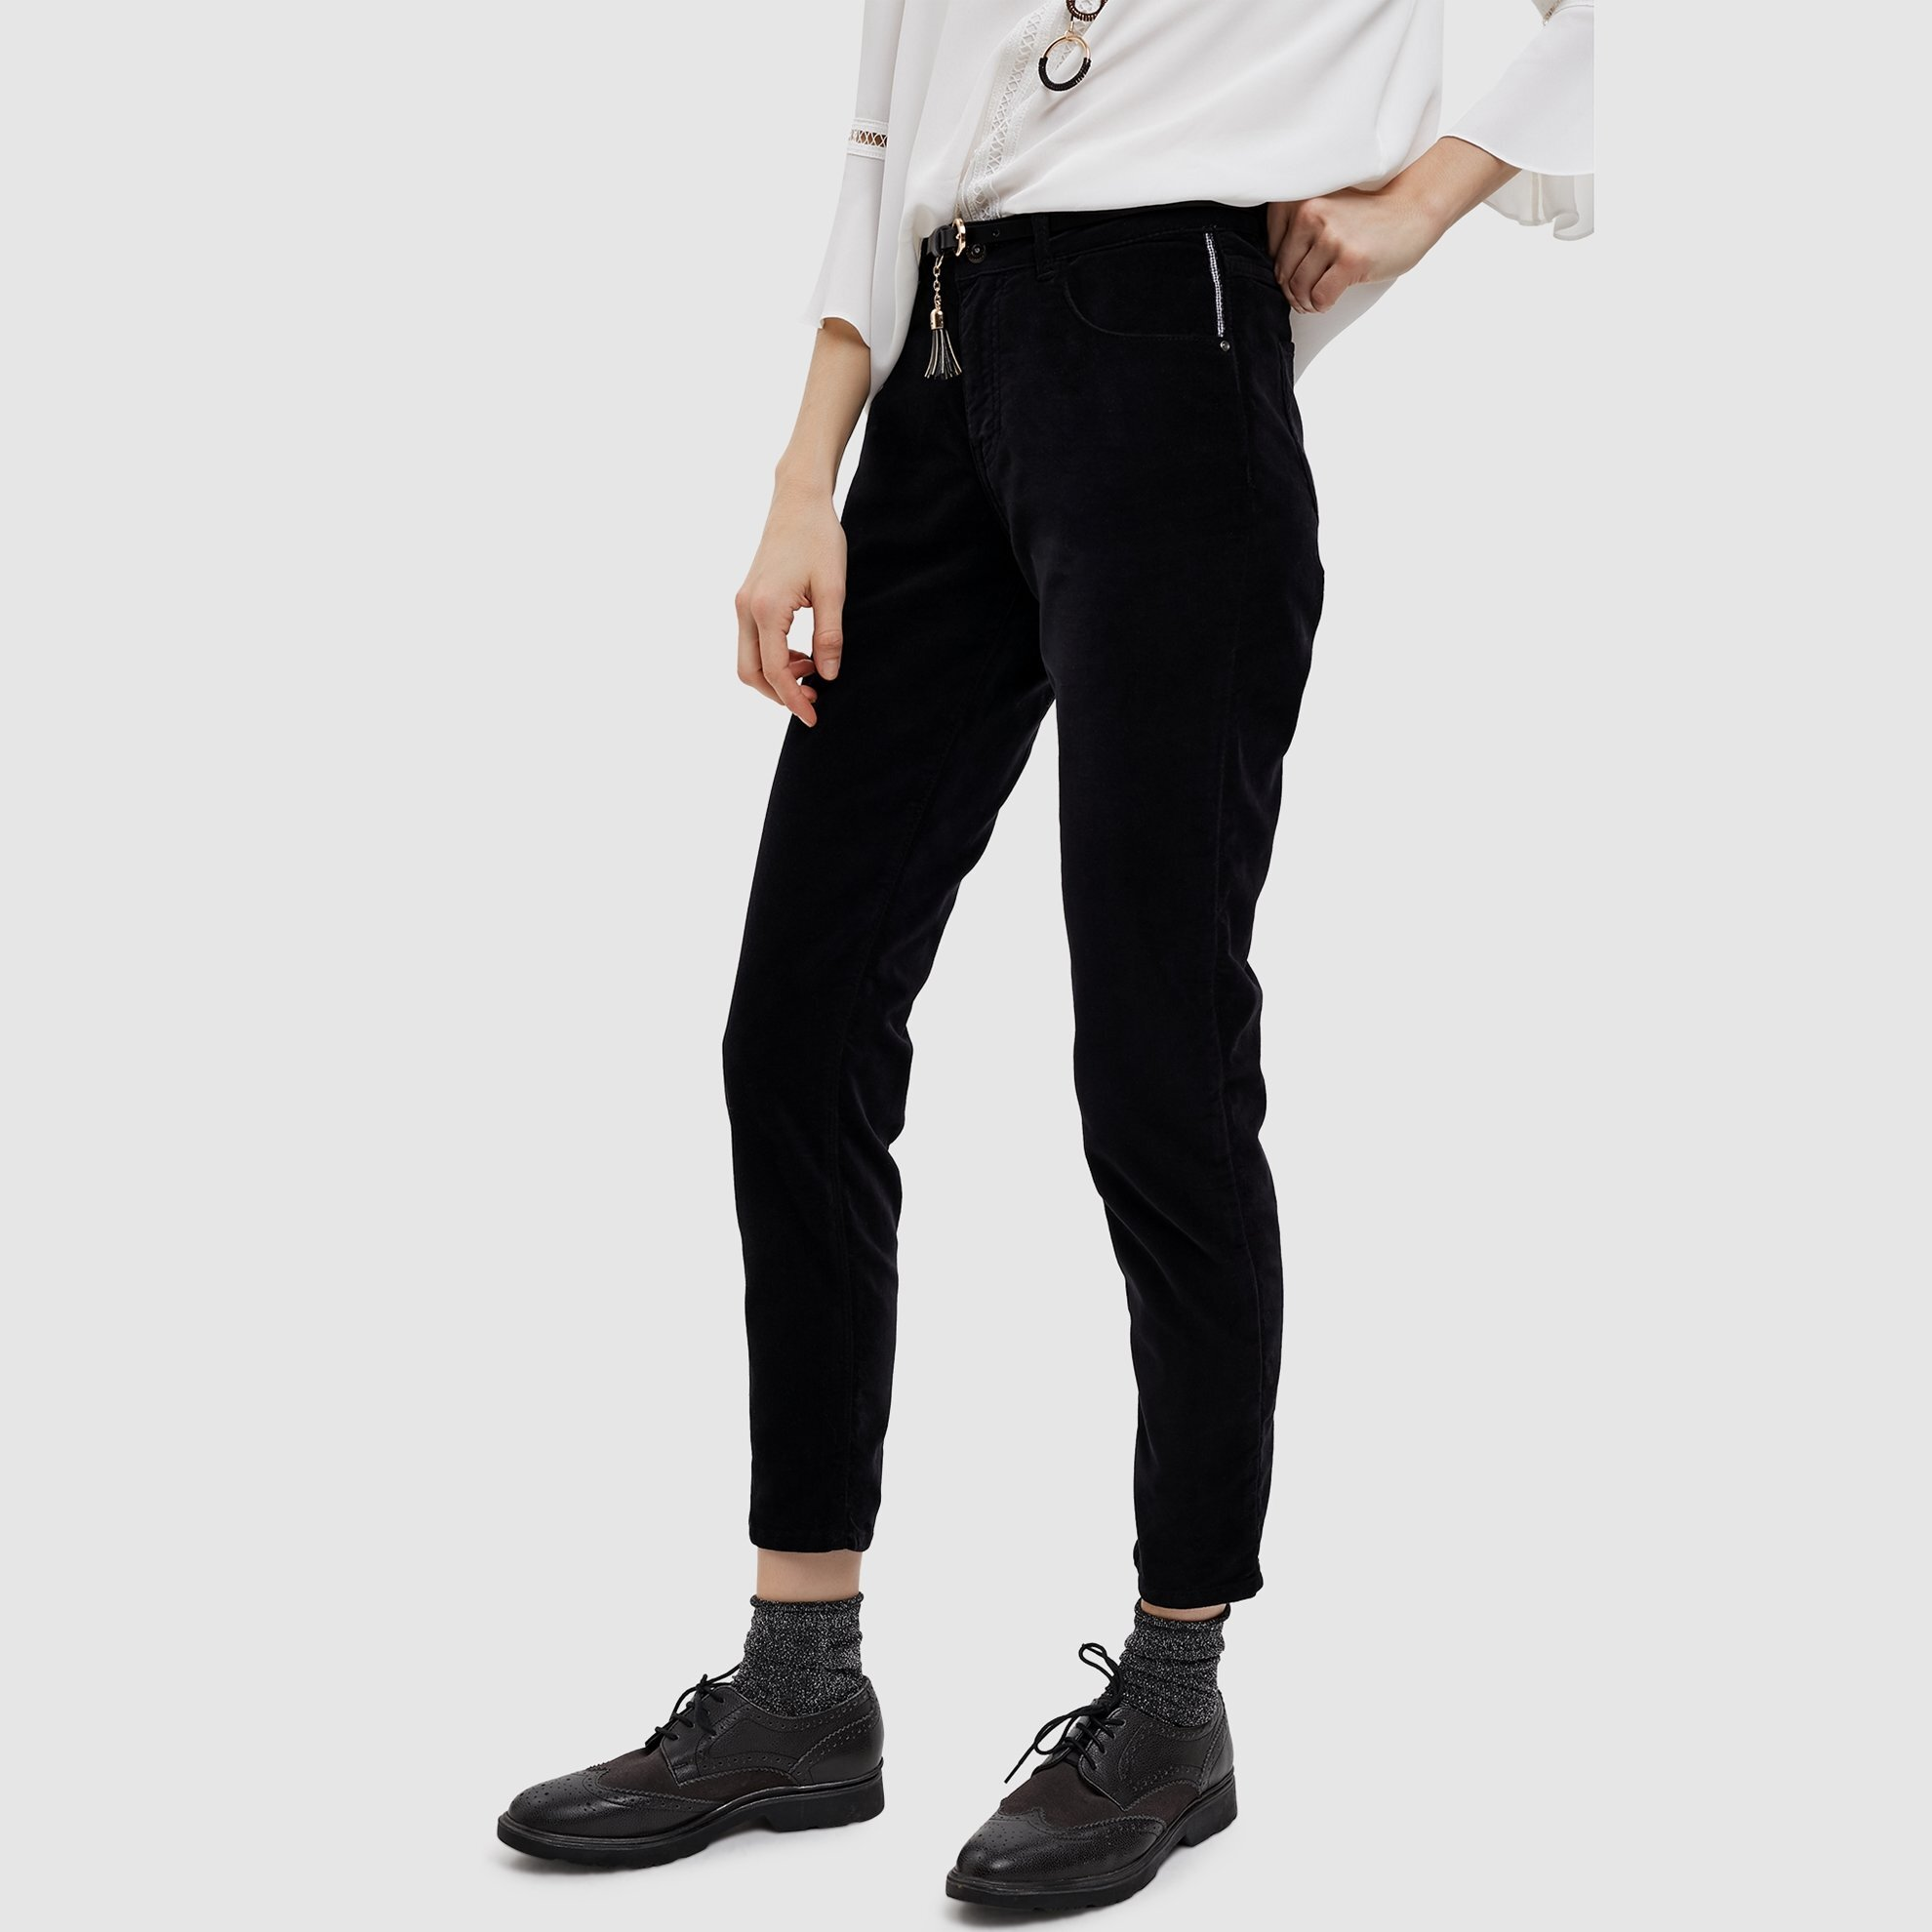 Corduroy Skinny Fit 5 Pocket Pants